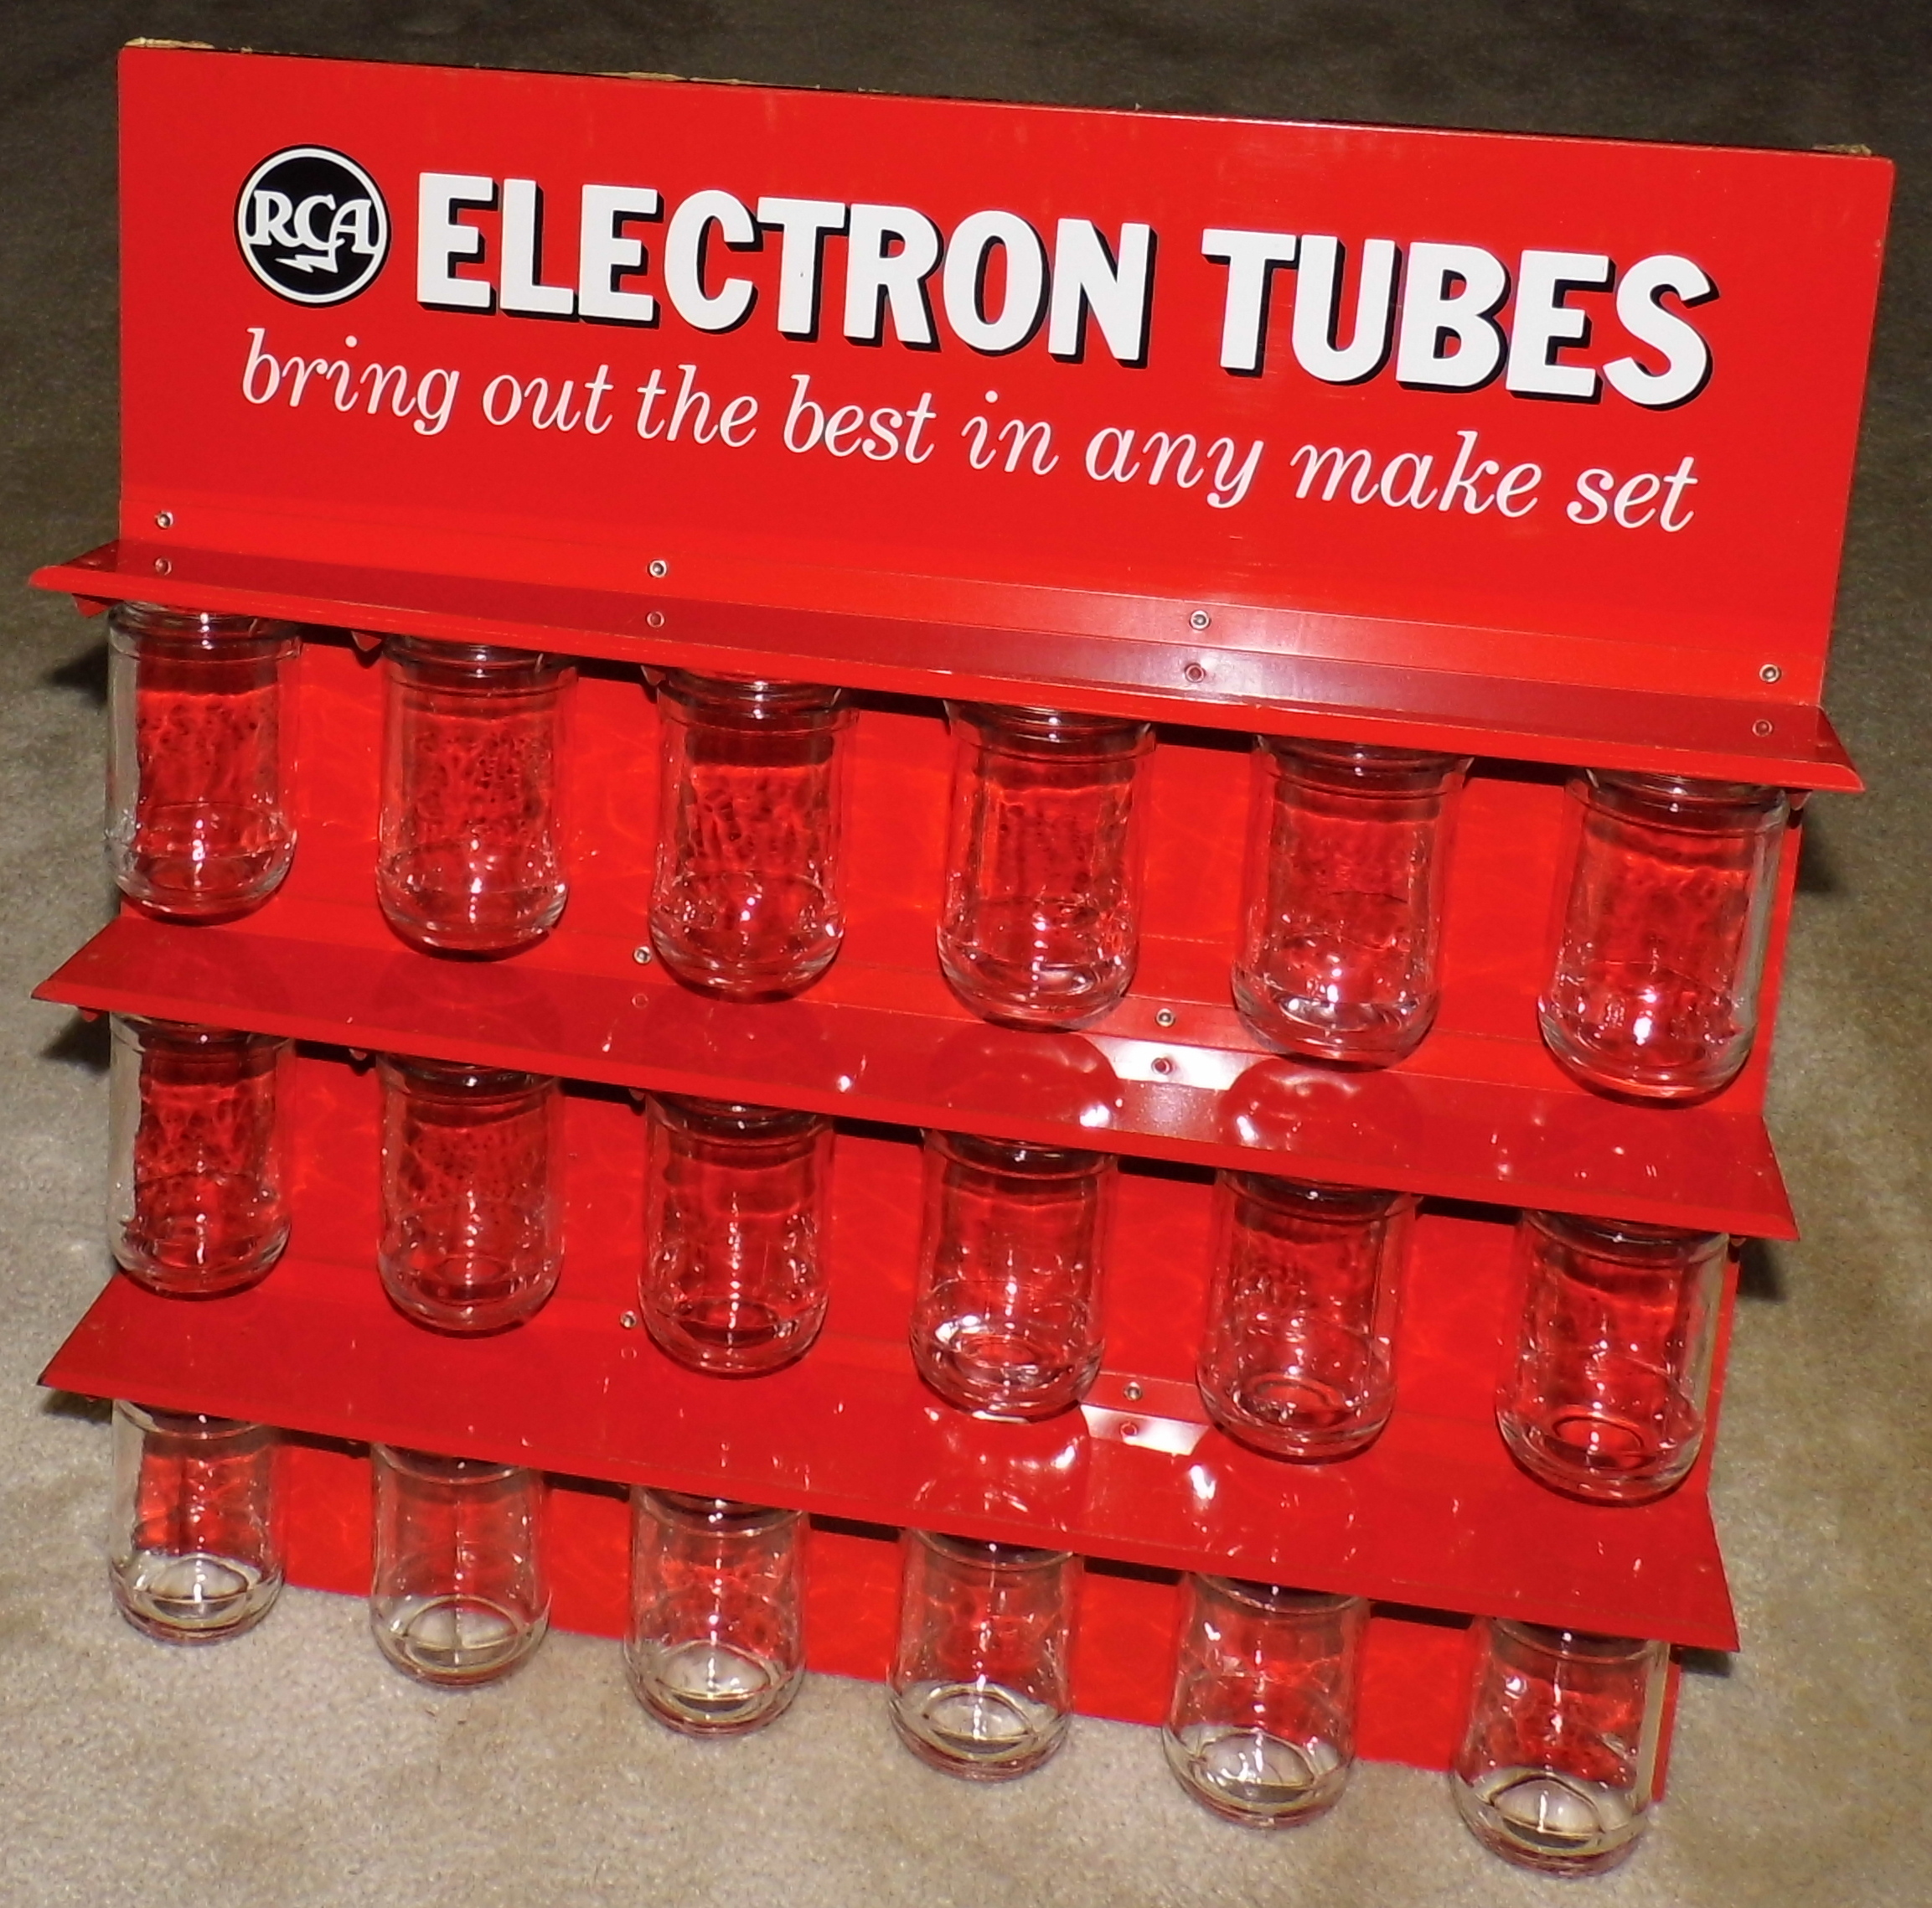 361117969963 as well File Vintage RCA Electron Tubes Wall Bottle Rack For Radio Repair Shops  14893631961 likewise 28 furthermore Eng RCA Victor BP 10 furthermore Vintagetvs. on old rca radio tubes